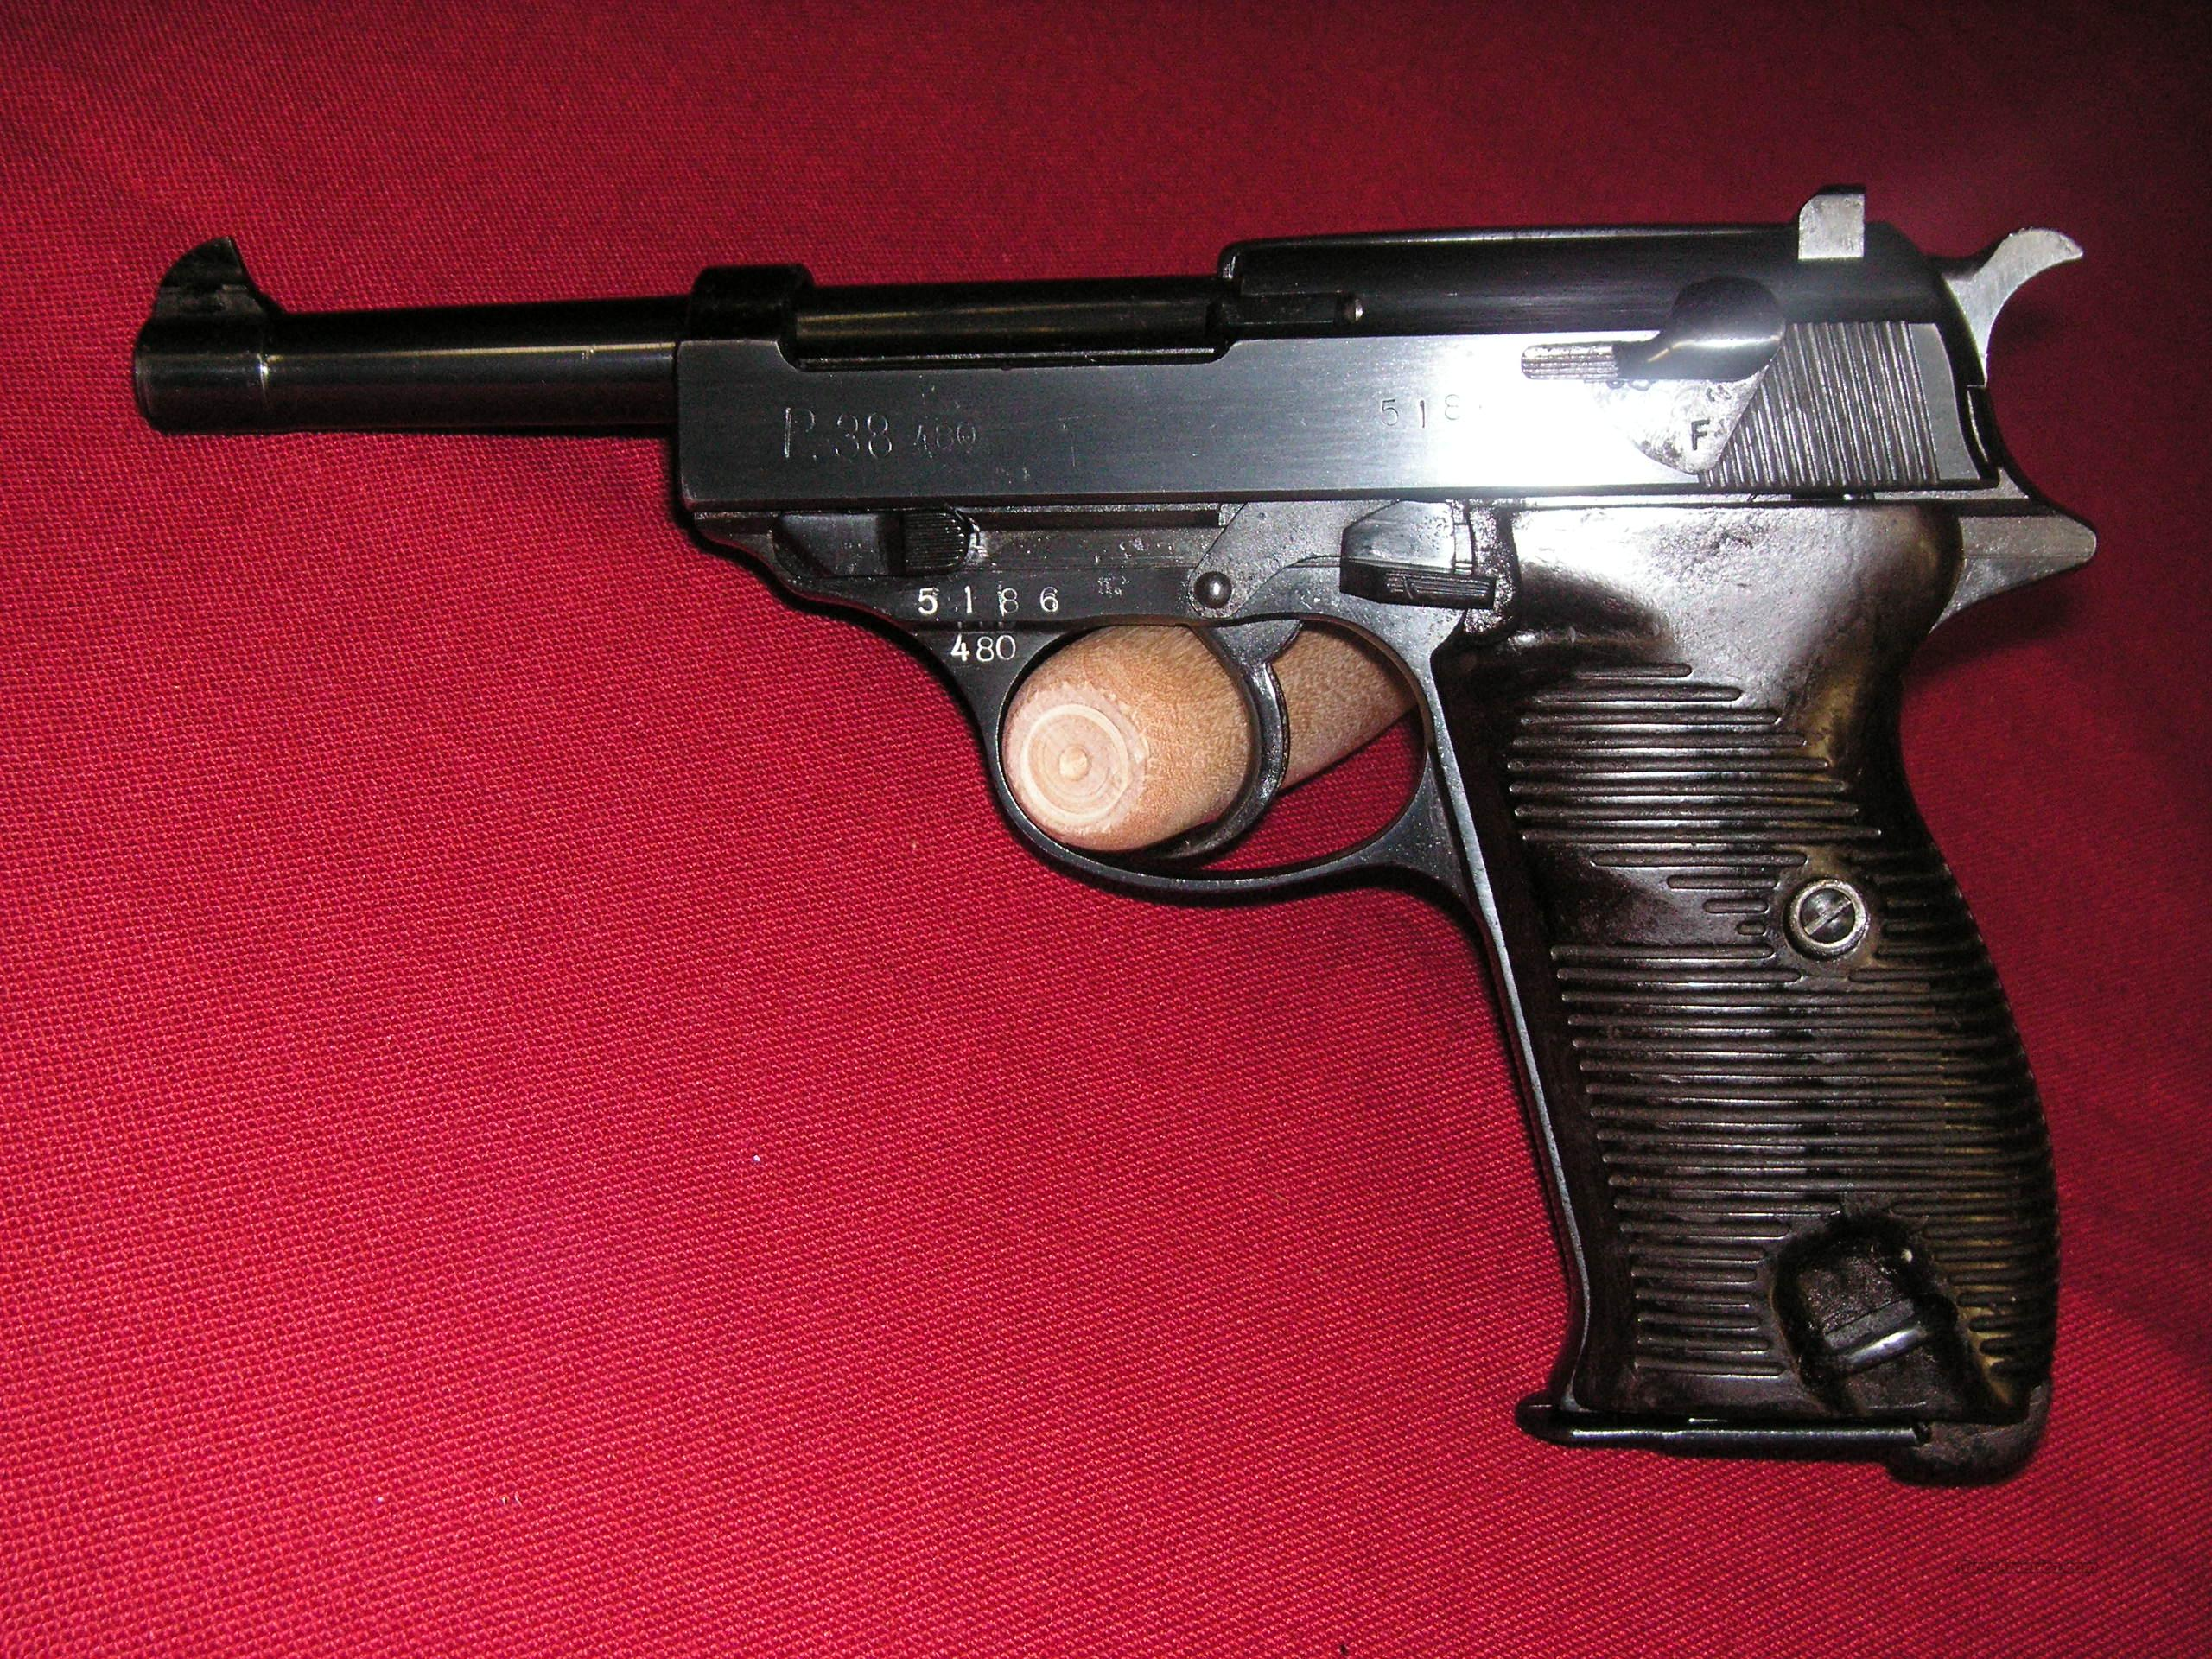 Walther WW2 P38 Code 480 in excelent cond.  Guns > Pistols > Walther Pistols > Pre-1945 > P-38